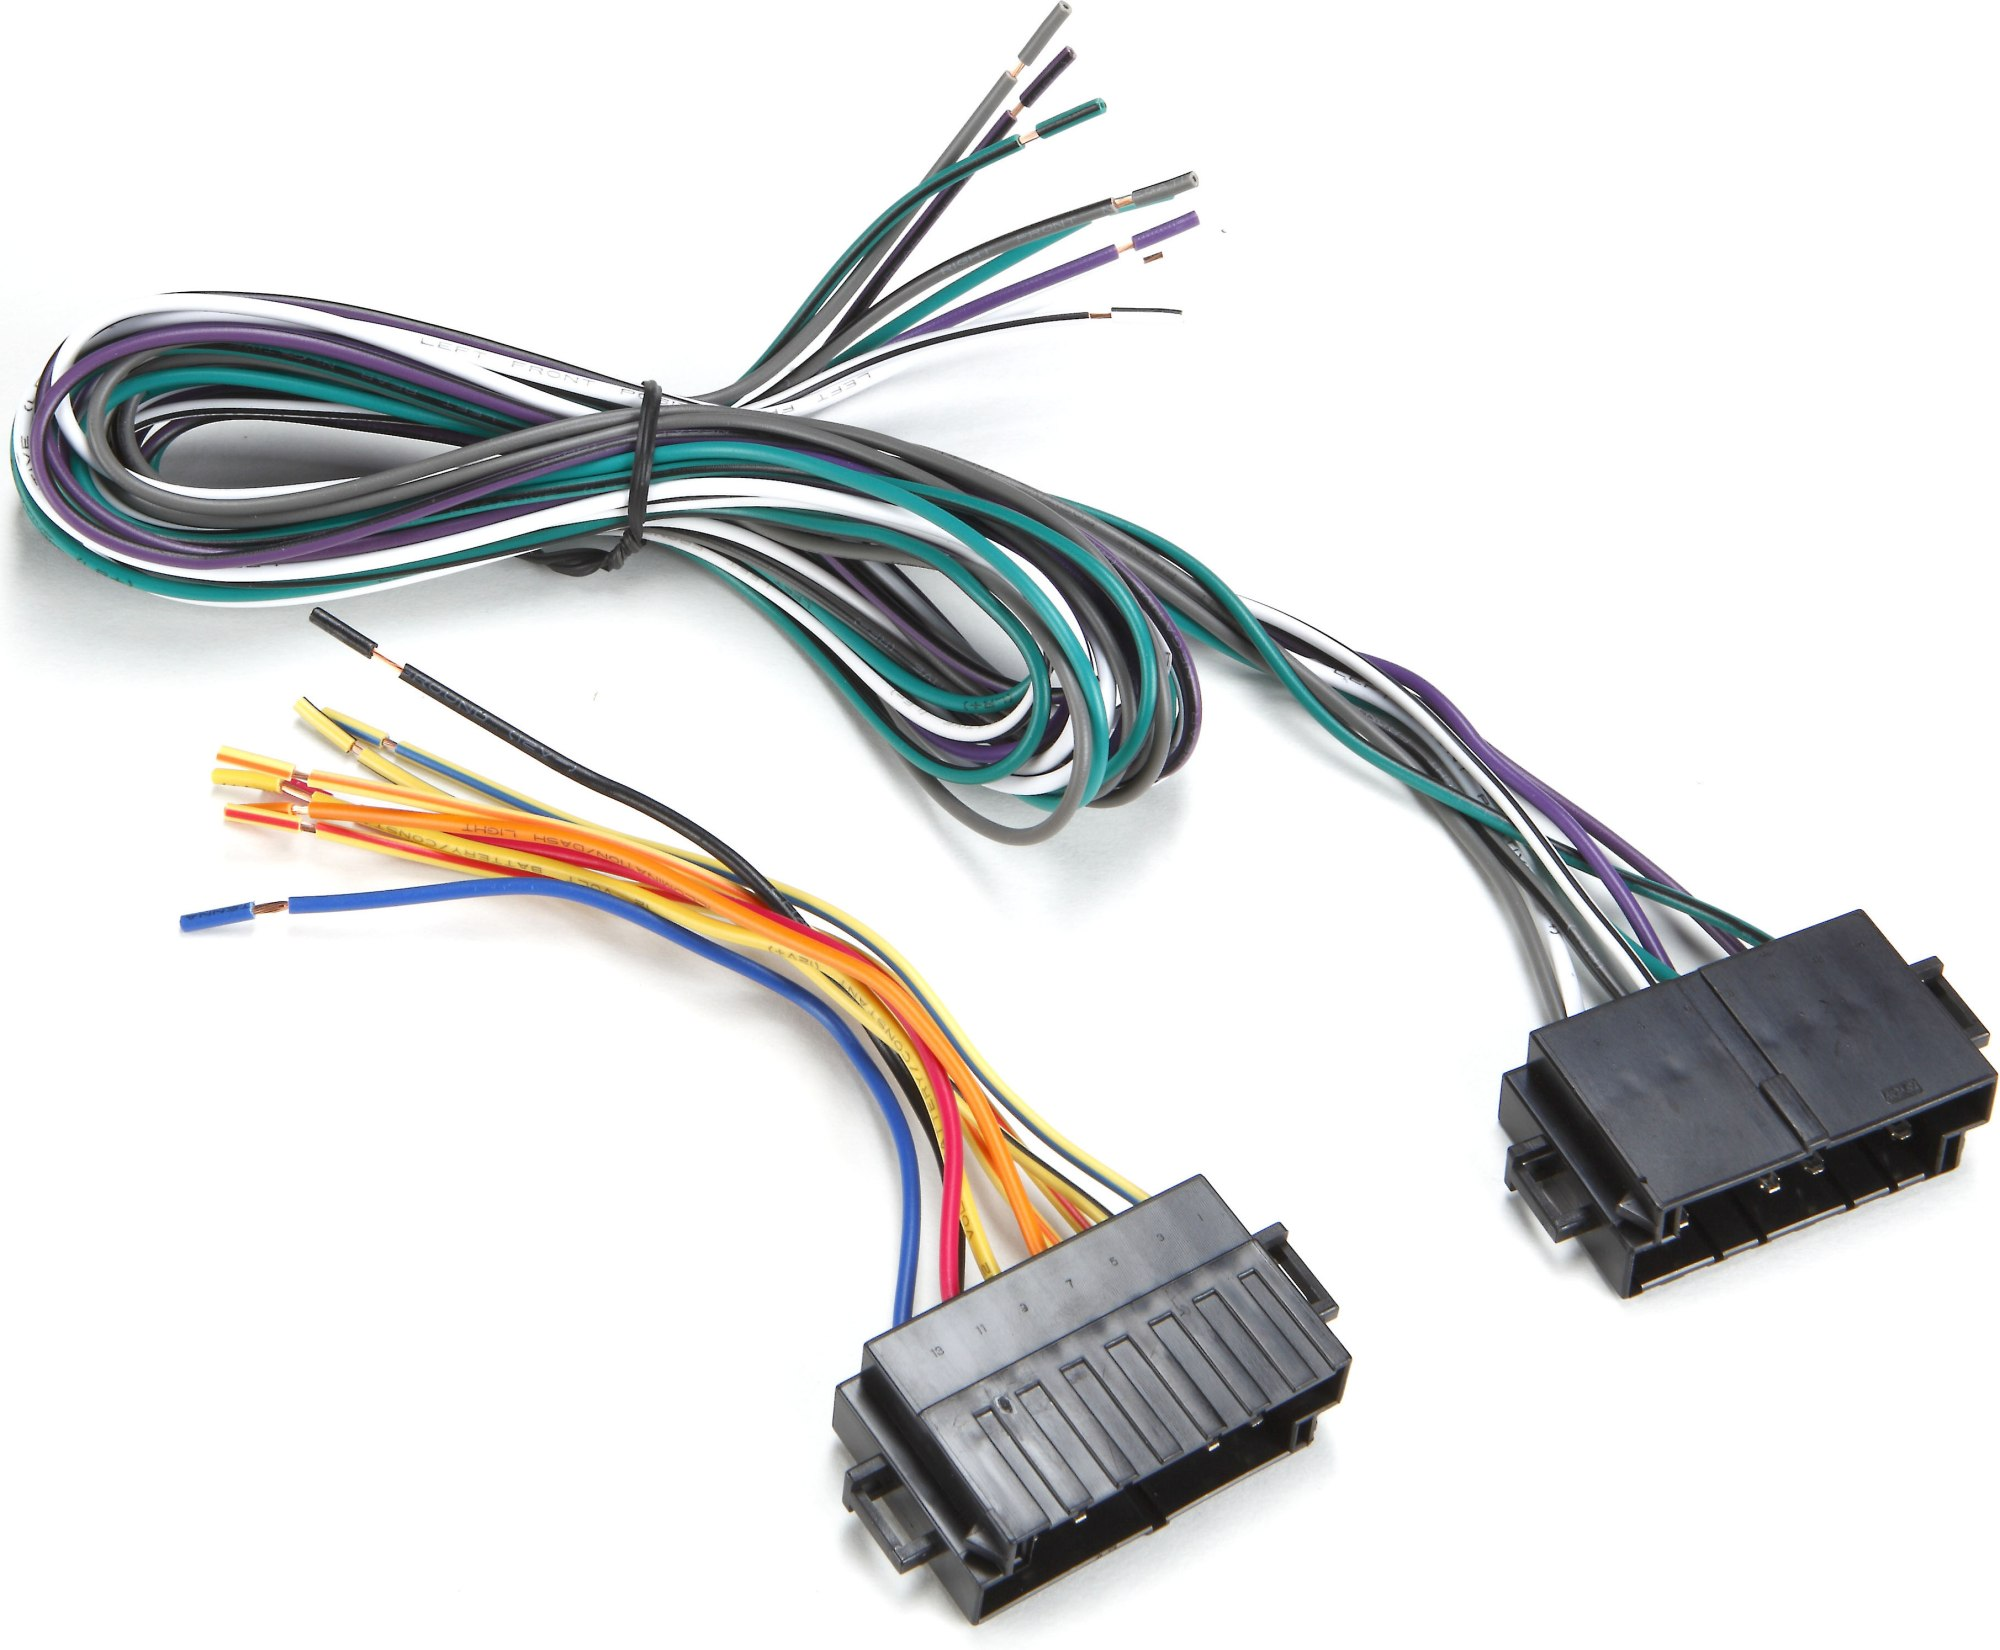 hight resolution of metra 70 1120 receiver wiring harness connect a new car stereo in select 1988 95 volvo vehicles at crutchfield com